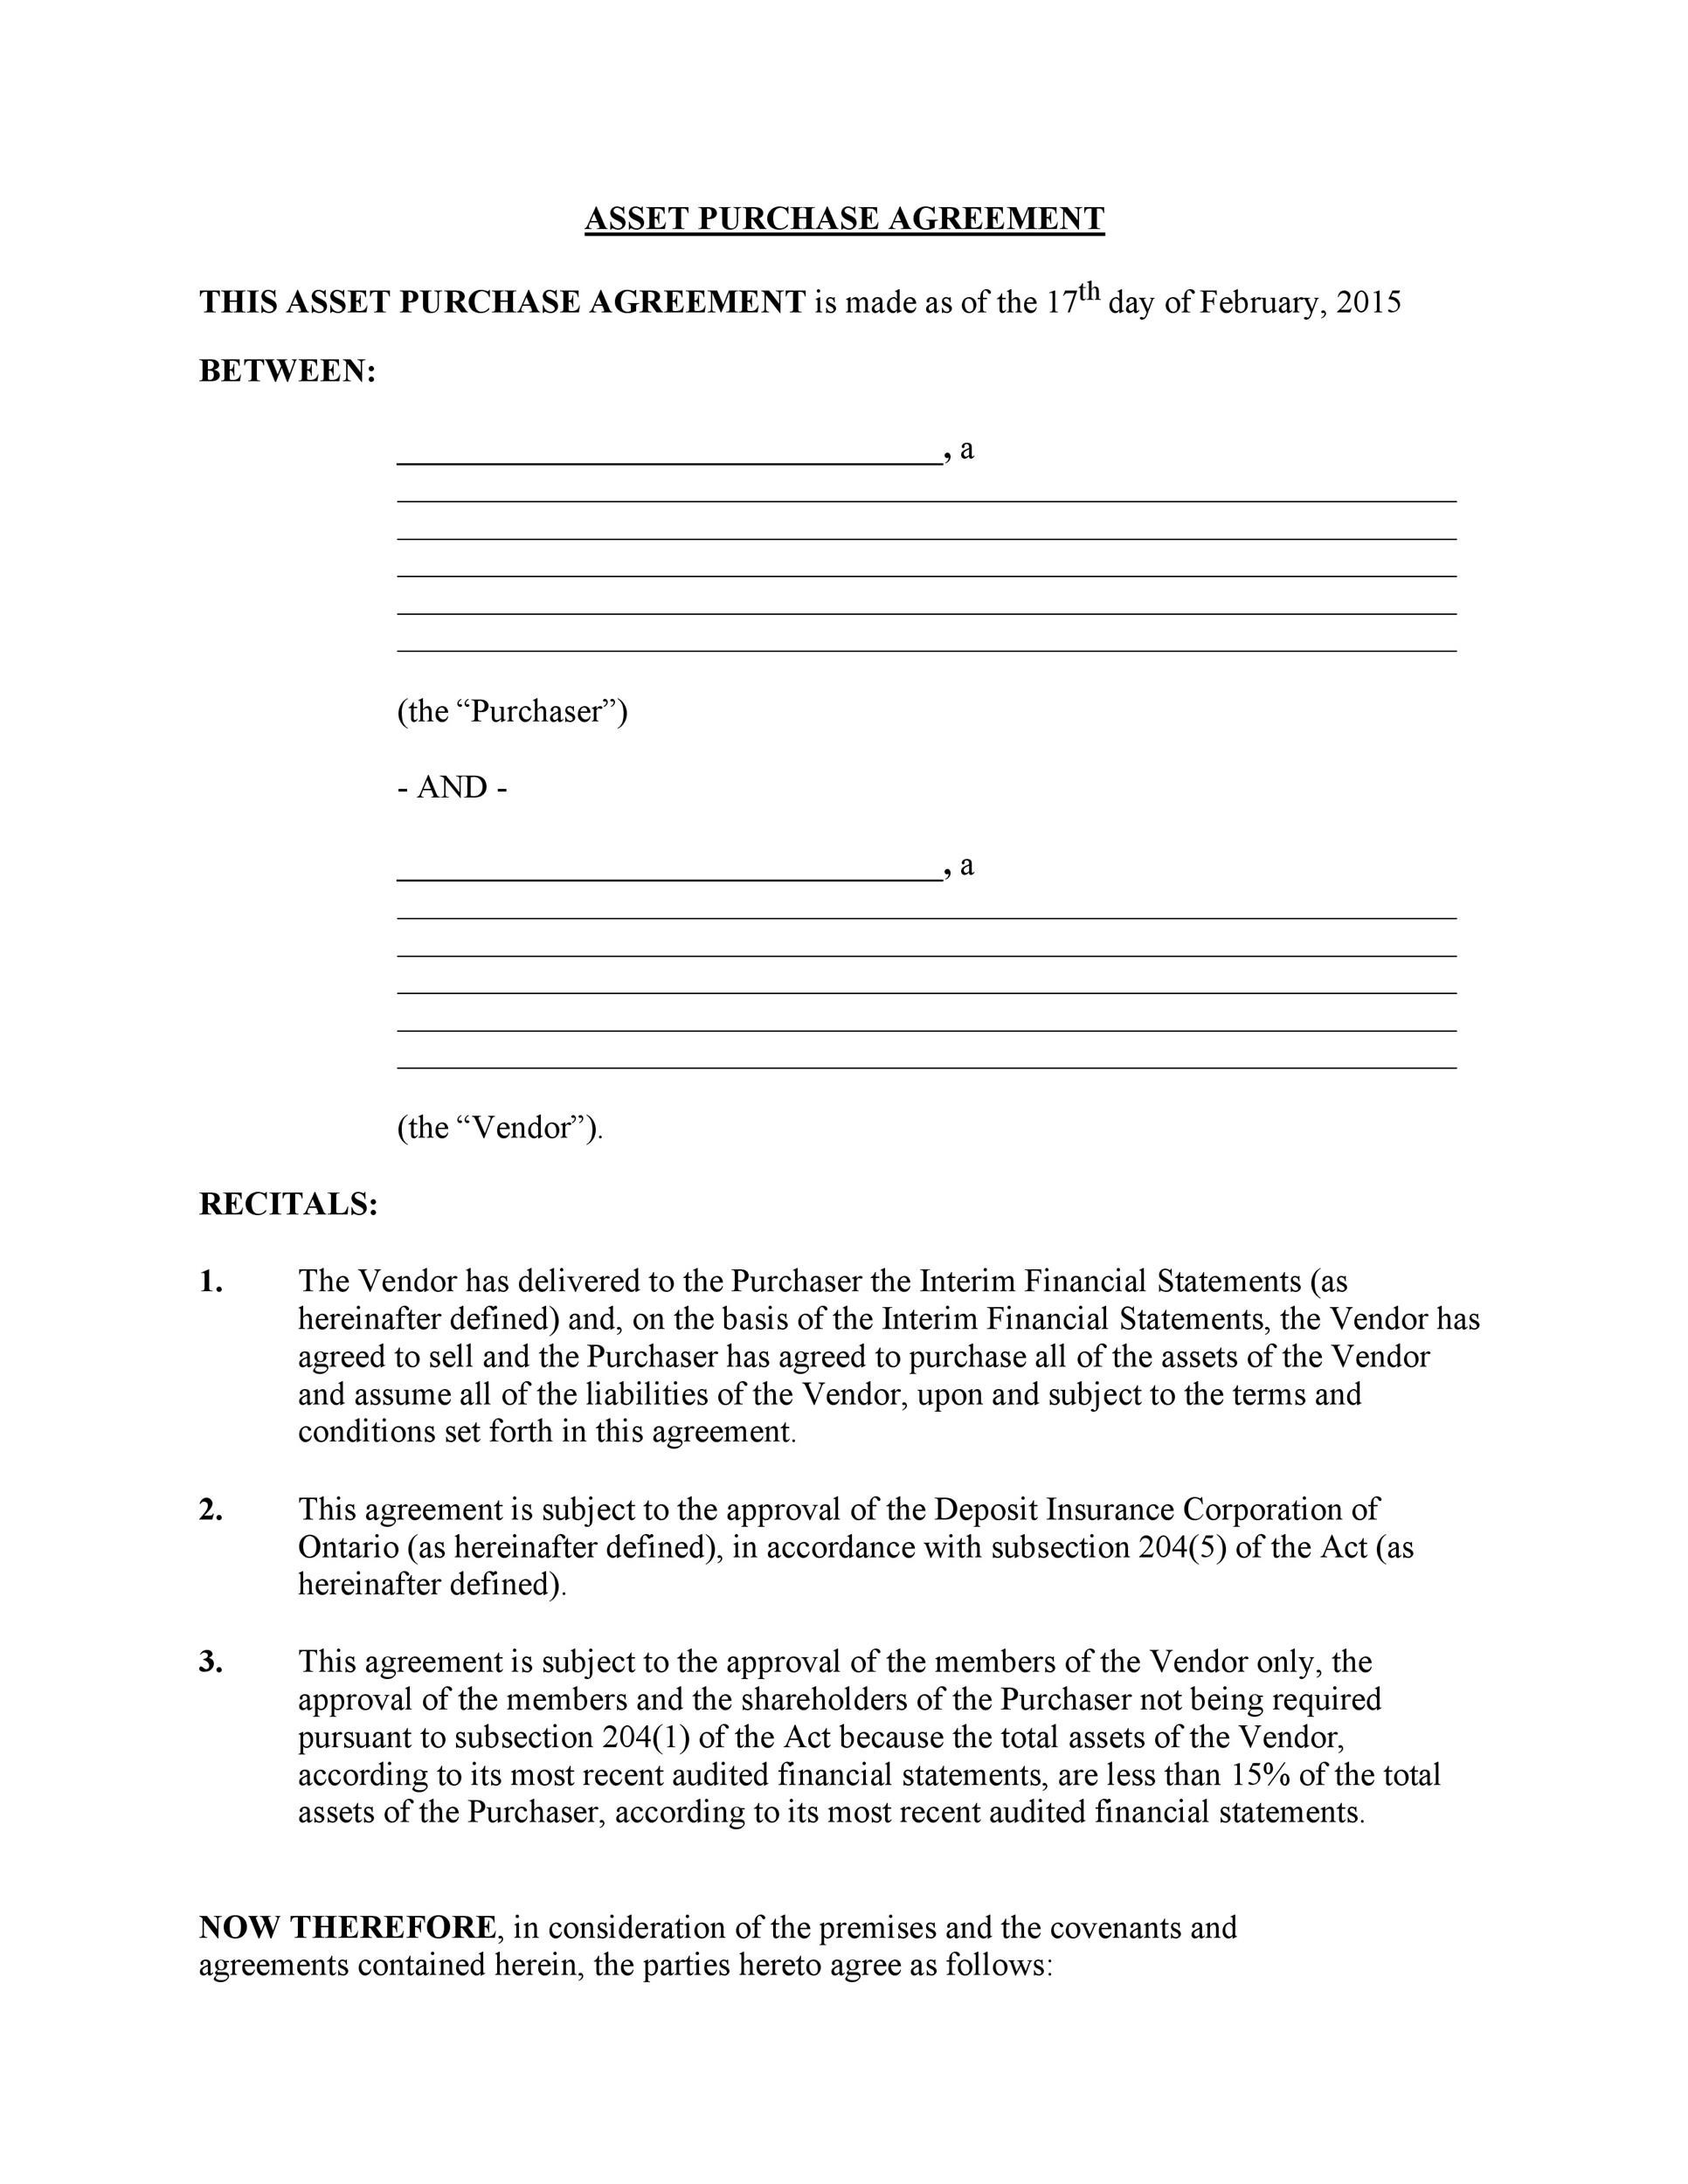 37 Simple Purchase Agreement Templates Real Estate, Business - printable purchase agreement